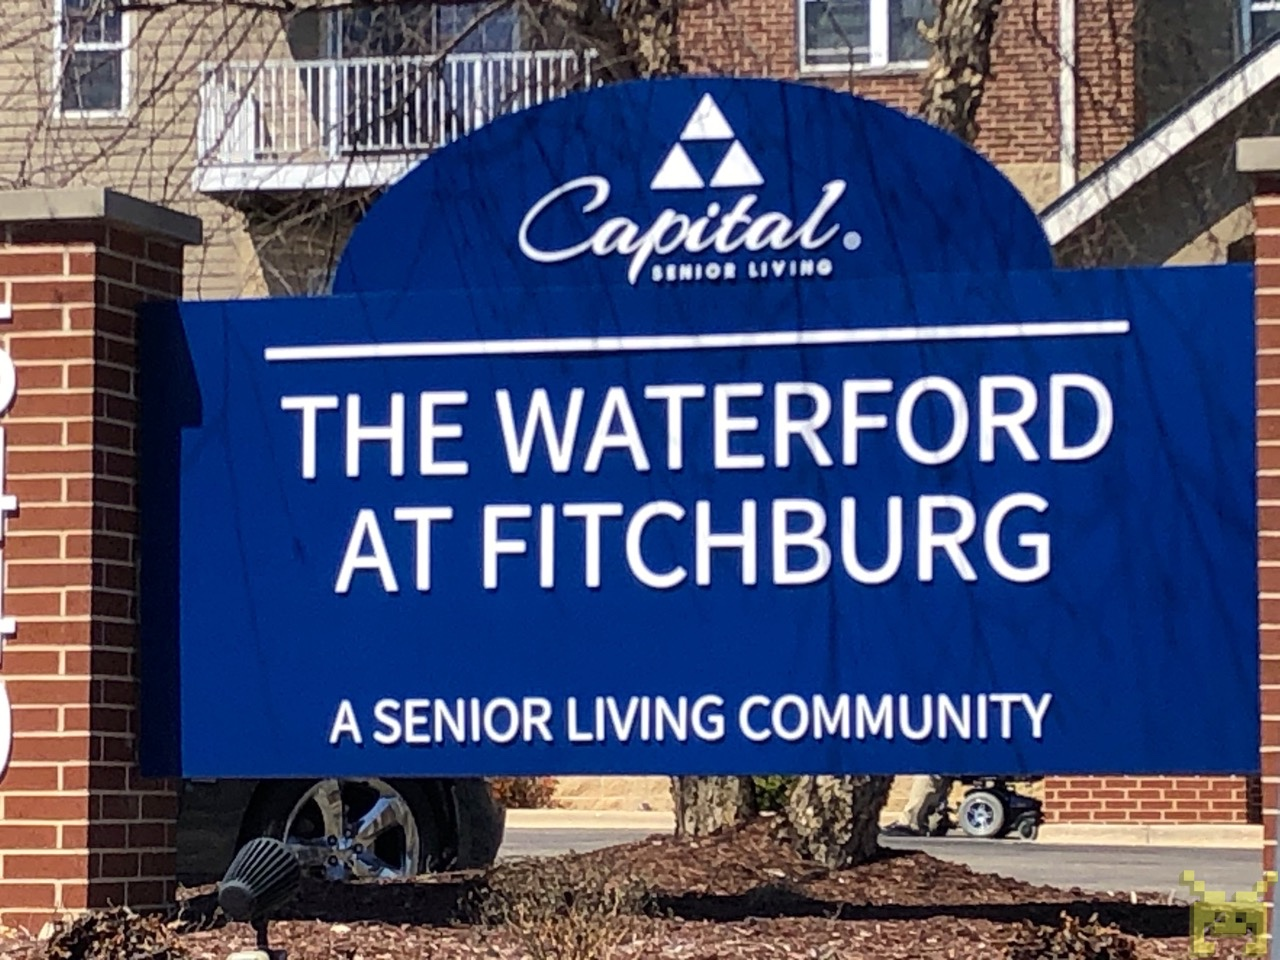 The Waterford at Fitchburg: A Senior Living Community